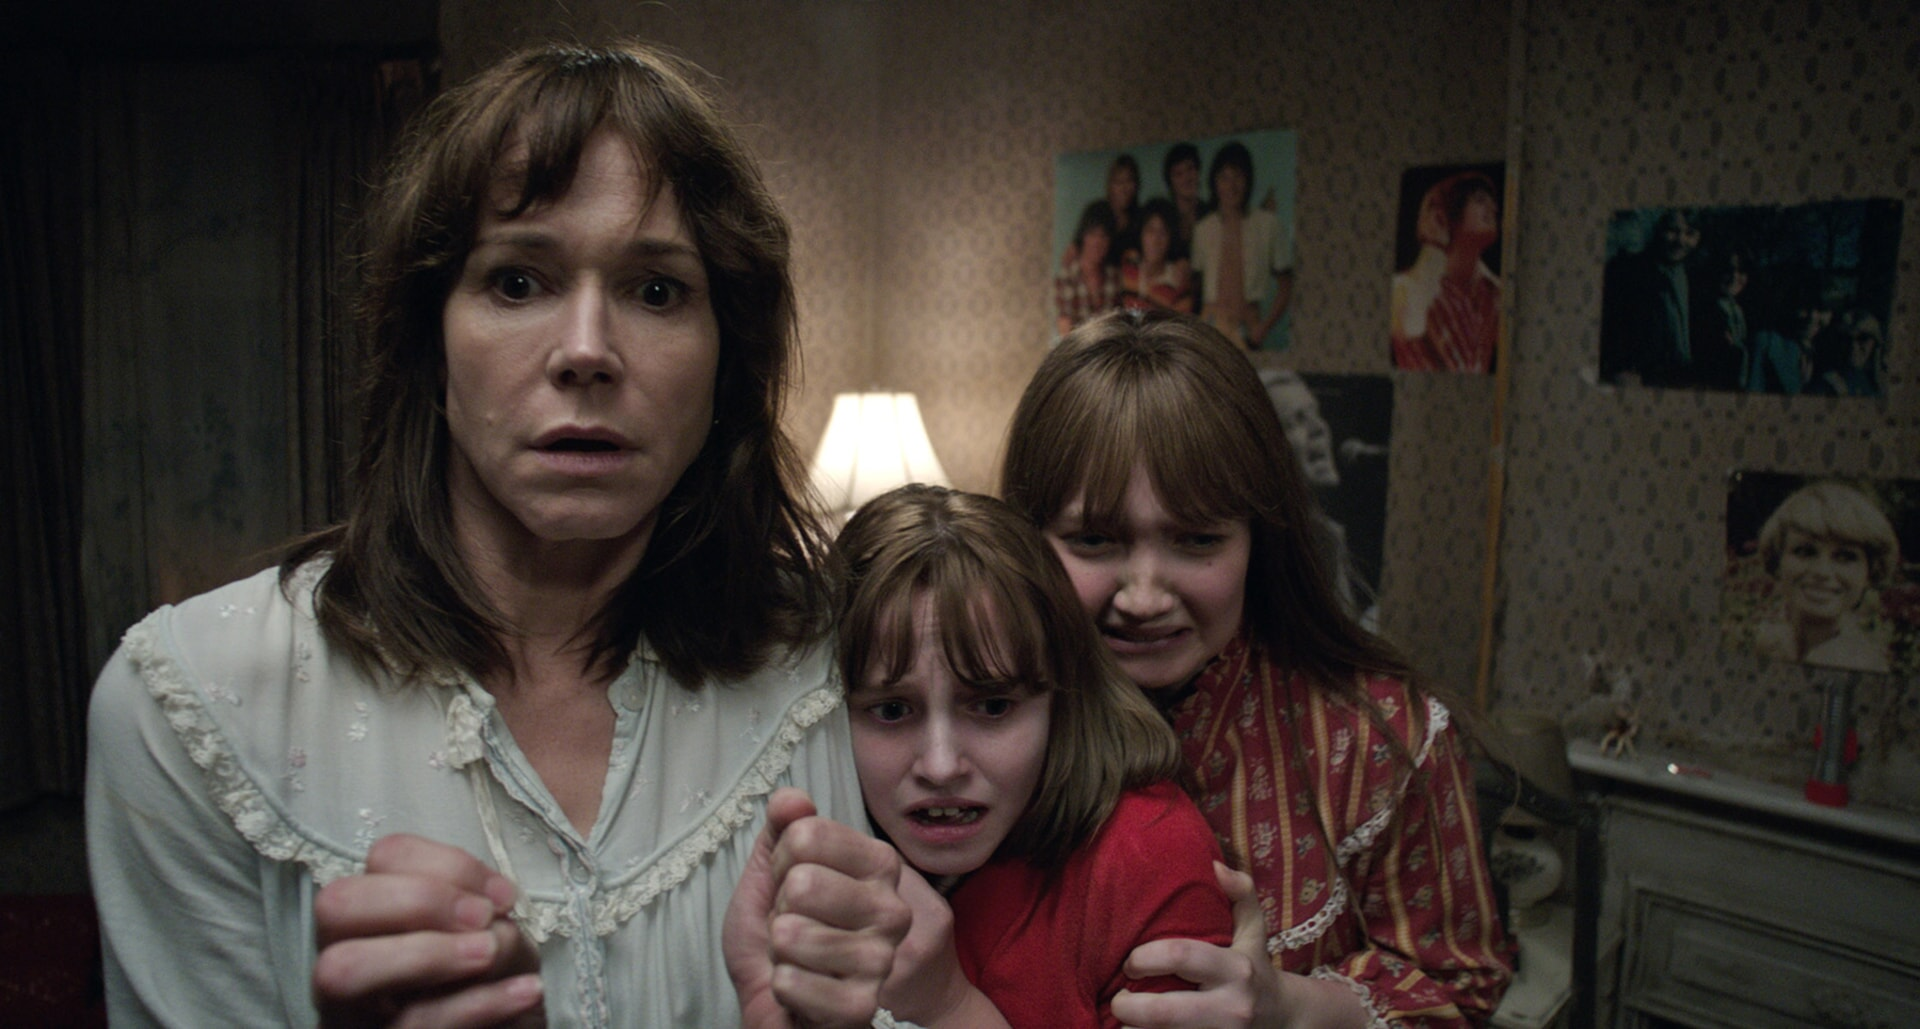 FRANCES O'CONNOR as Peggy Hodgson, MADISON WOLFE as Janet Hodgson and LAUREN ESPOSITO as Margaret Hodgson huddled together with frightened expressions